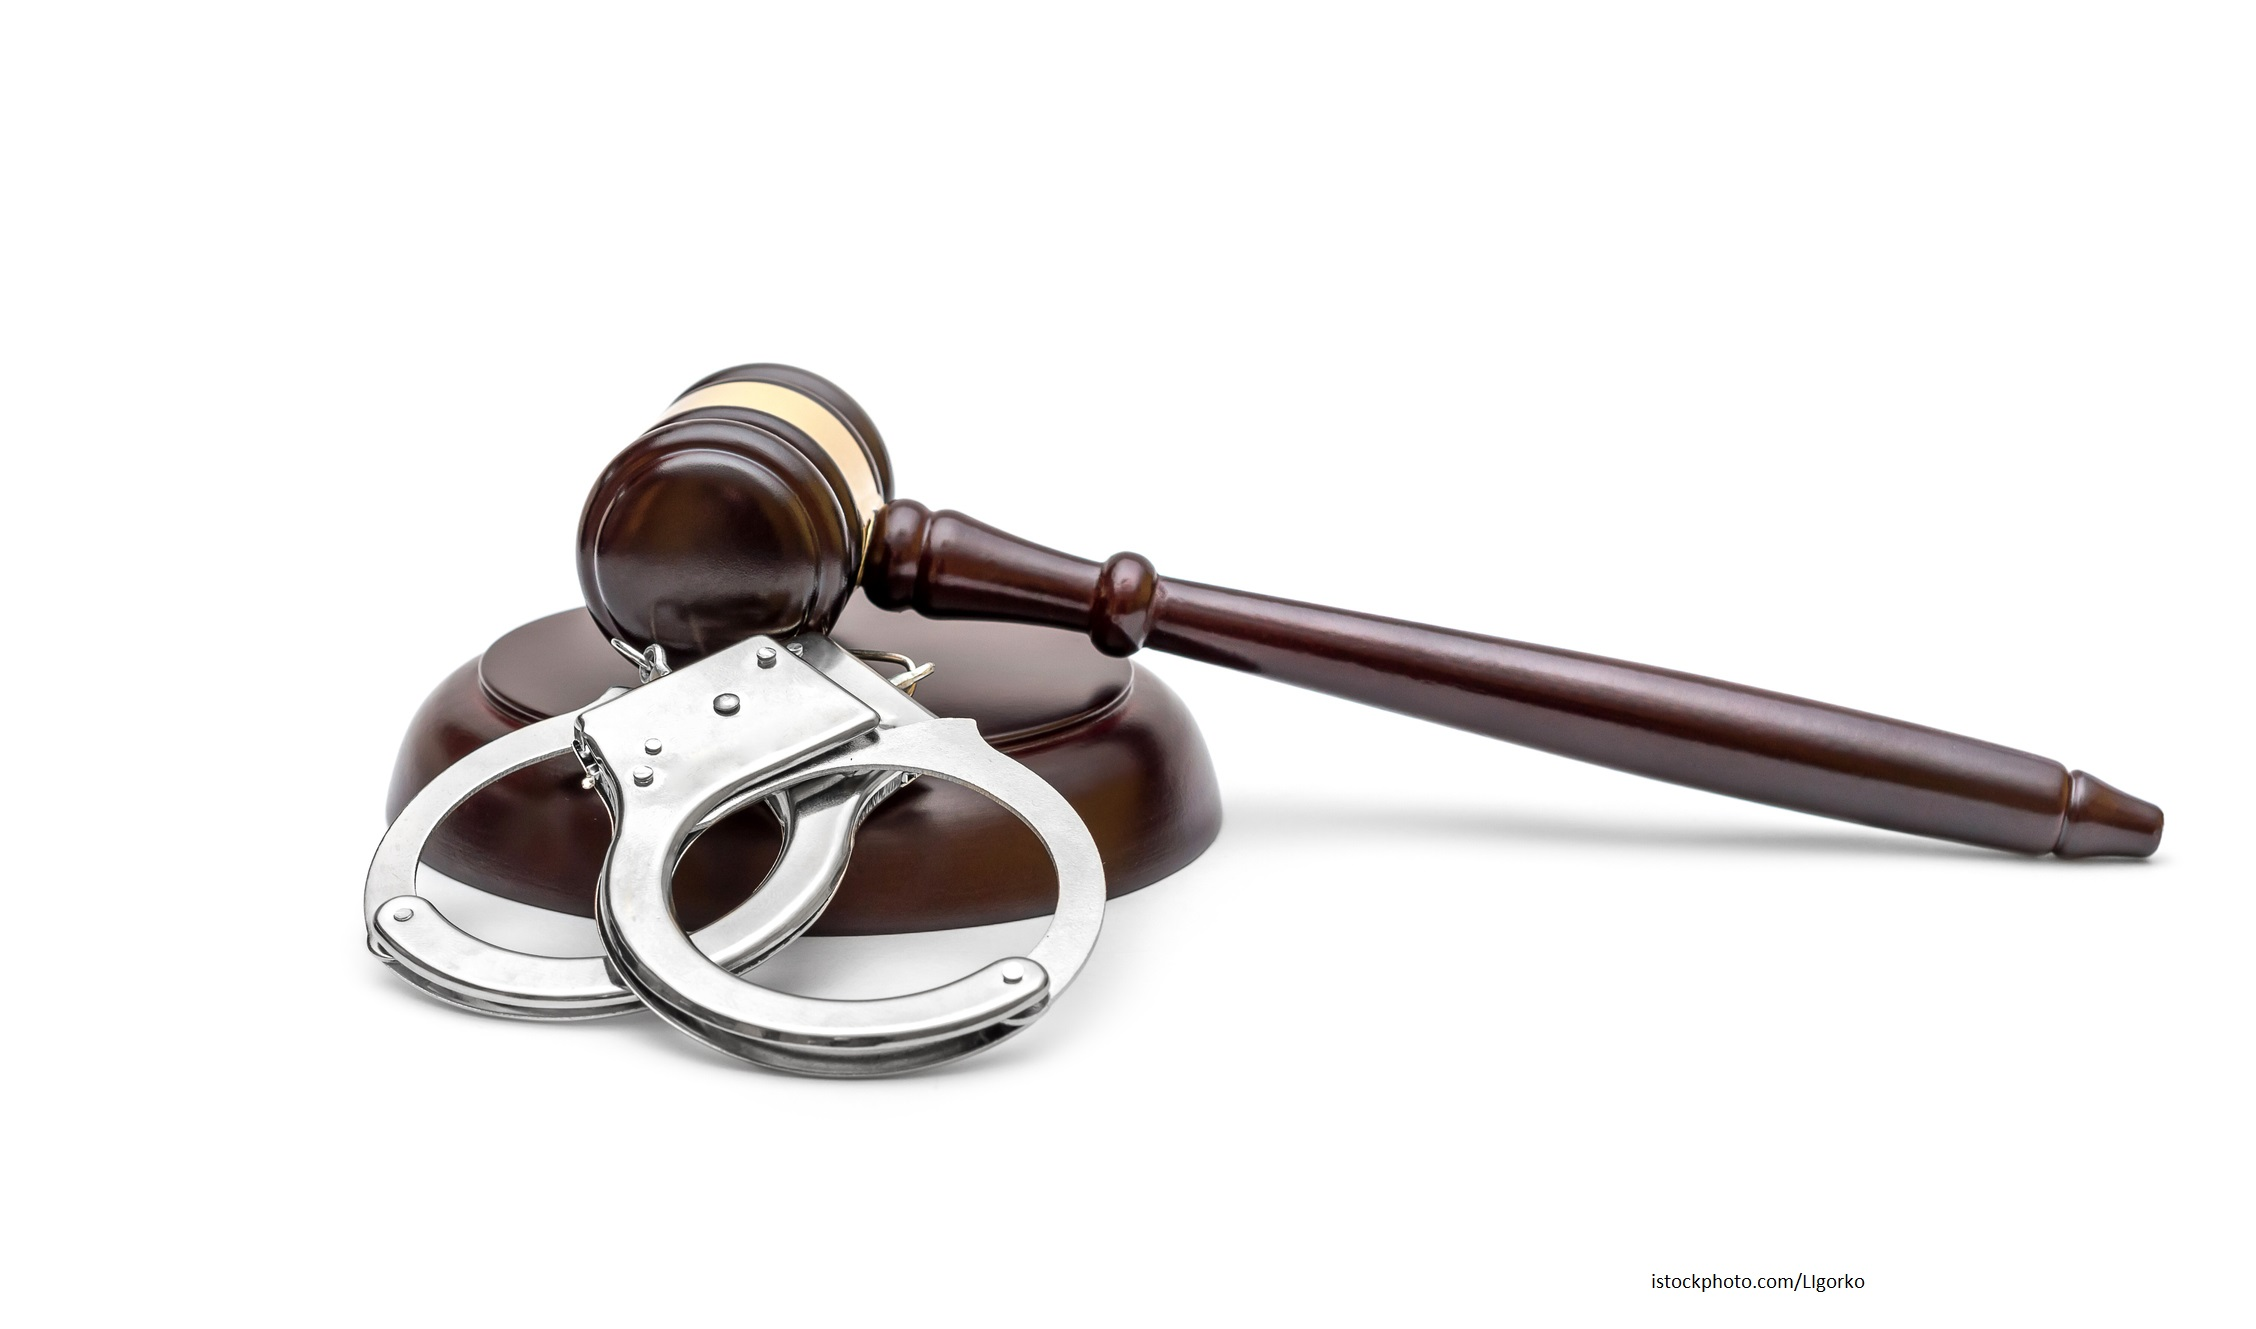 Handcuffs with judge's gavel on white background. Law concept.